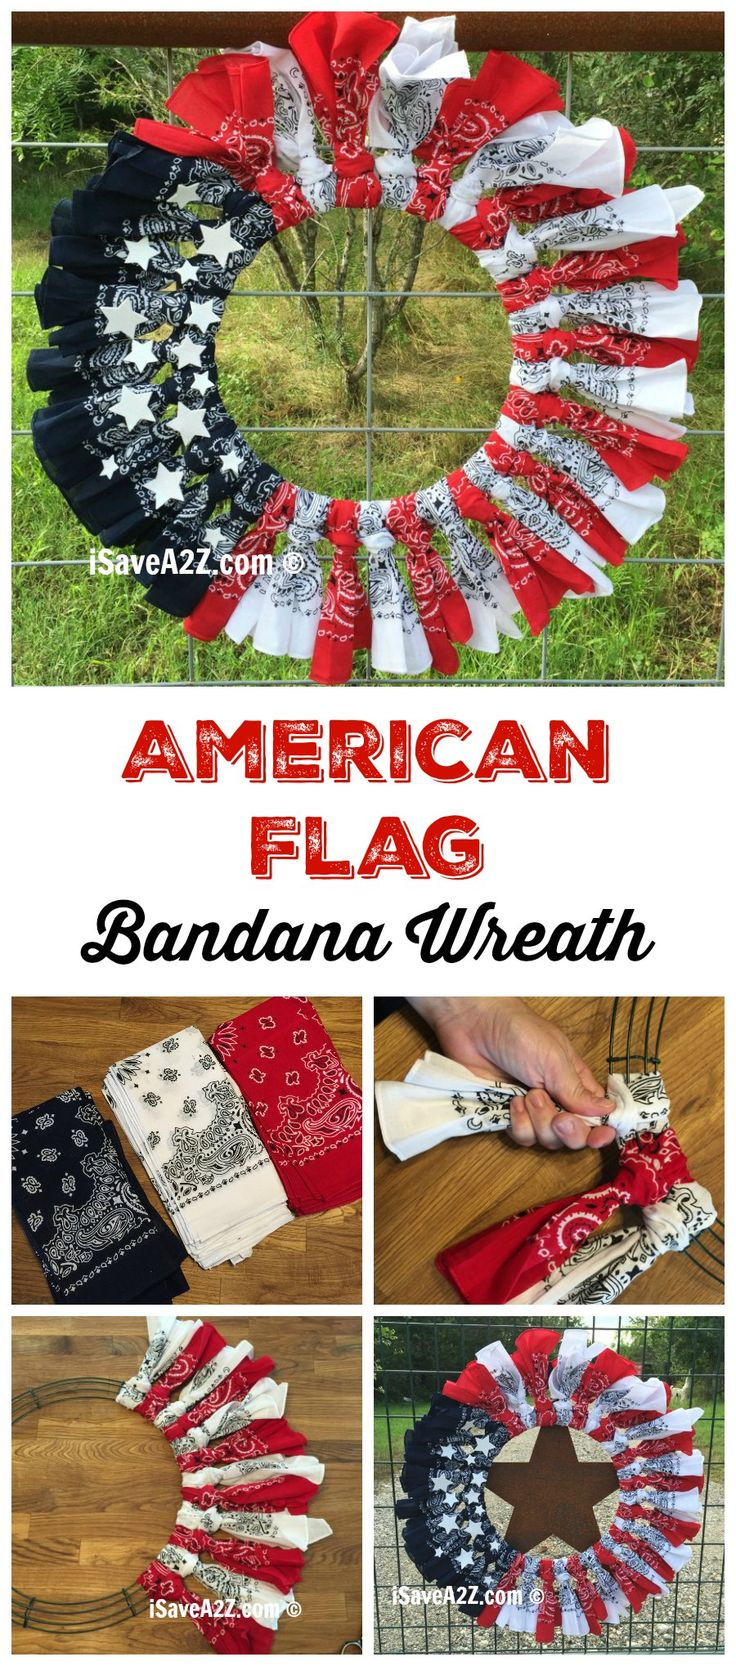 Share2K Pin61K TweetShares 63KRed, White and Blue Bandana Flag Wreath Craft Idea I love decorating our home for the 4th of July so it's no surprise that I would have a Red, White and Blue Bandana Flag Wreath at my front door! I might go a bit overboard though with with table decorations and red, whiteContinue Reading...